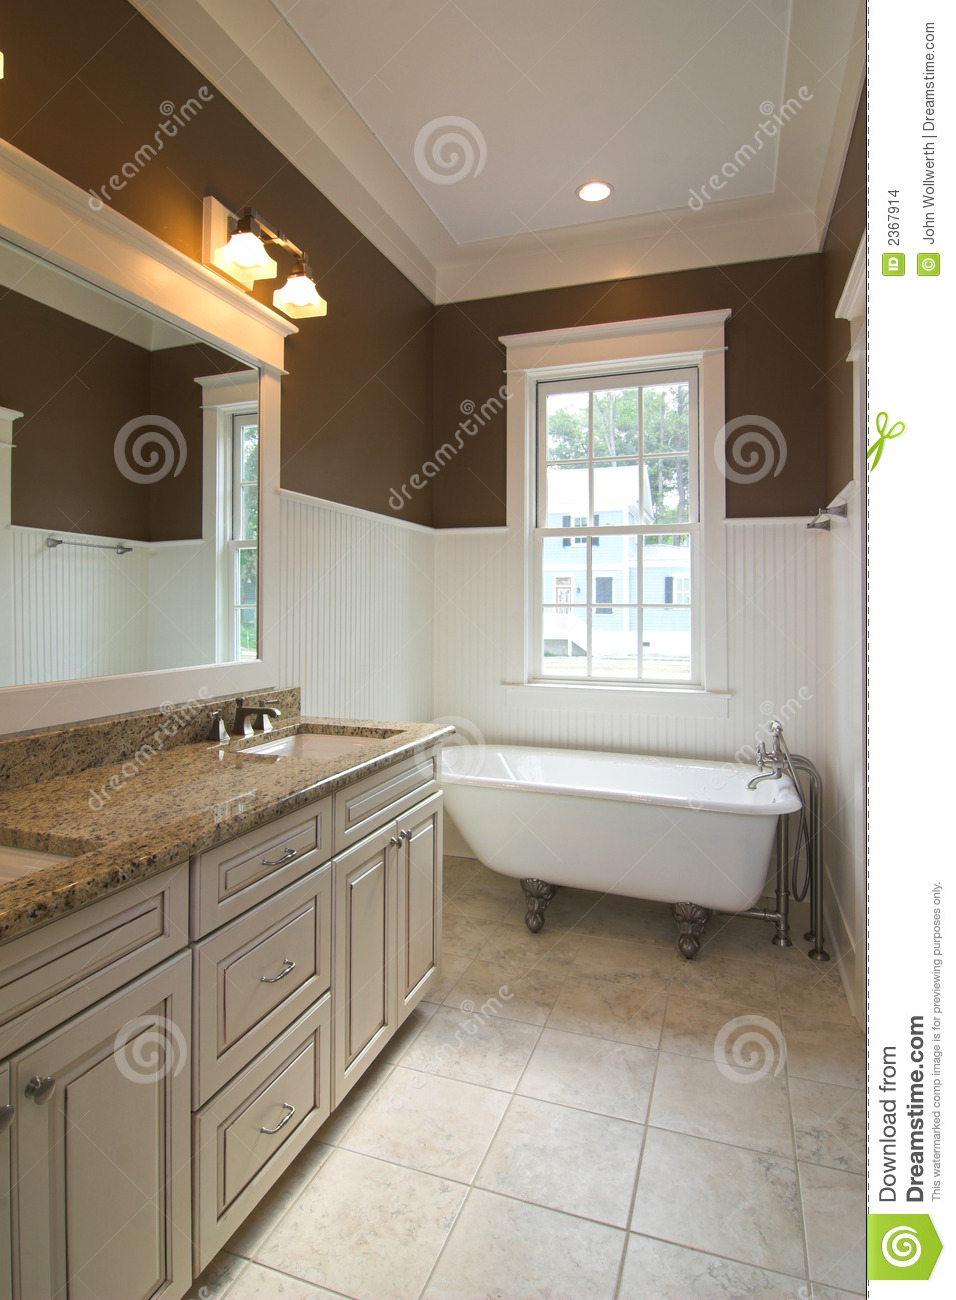 Bathroom with clawfoot tub stock photo Image of crown